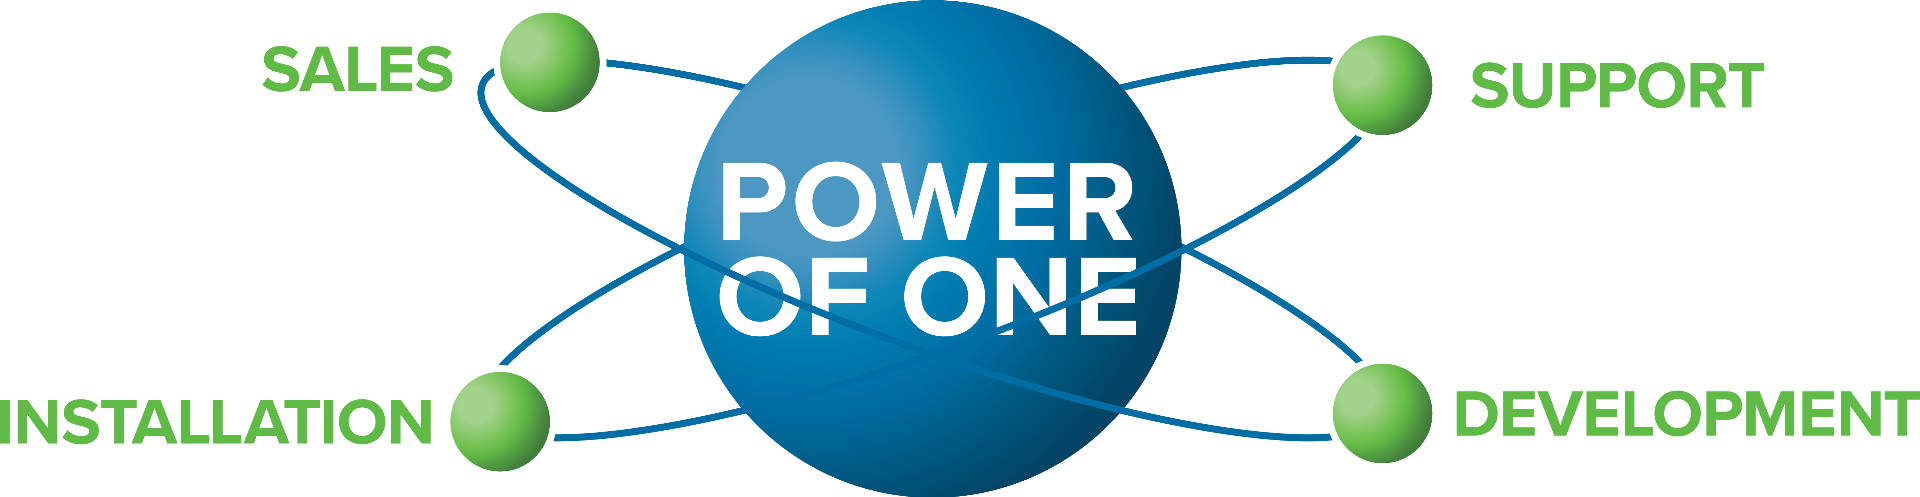 Power Of One Graphic